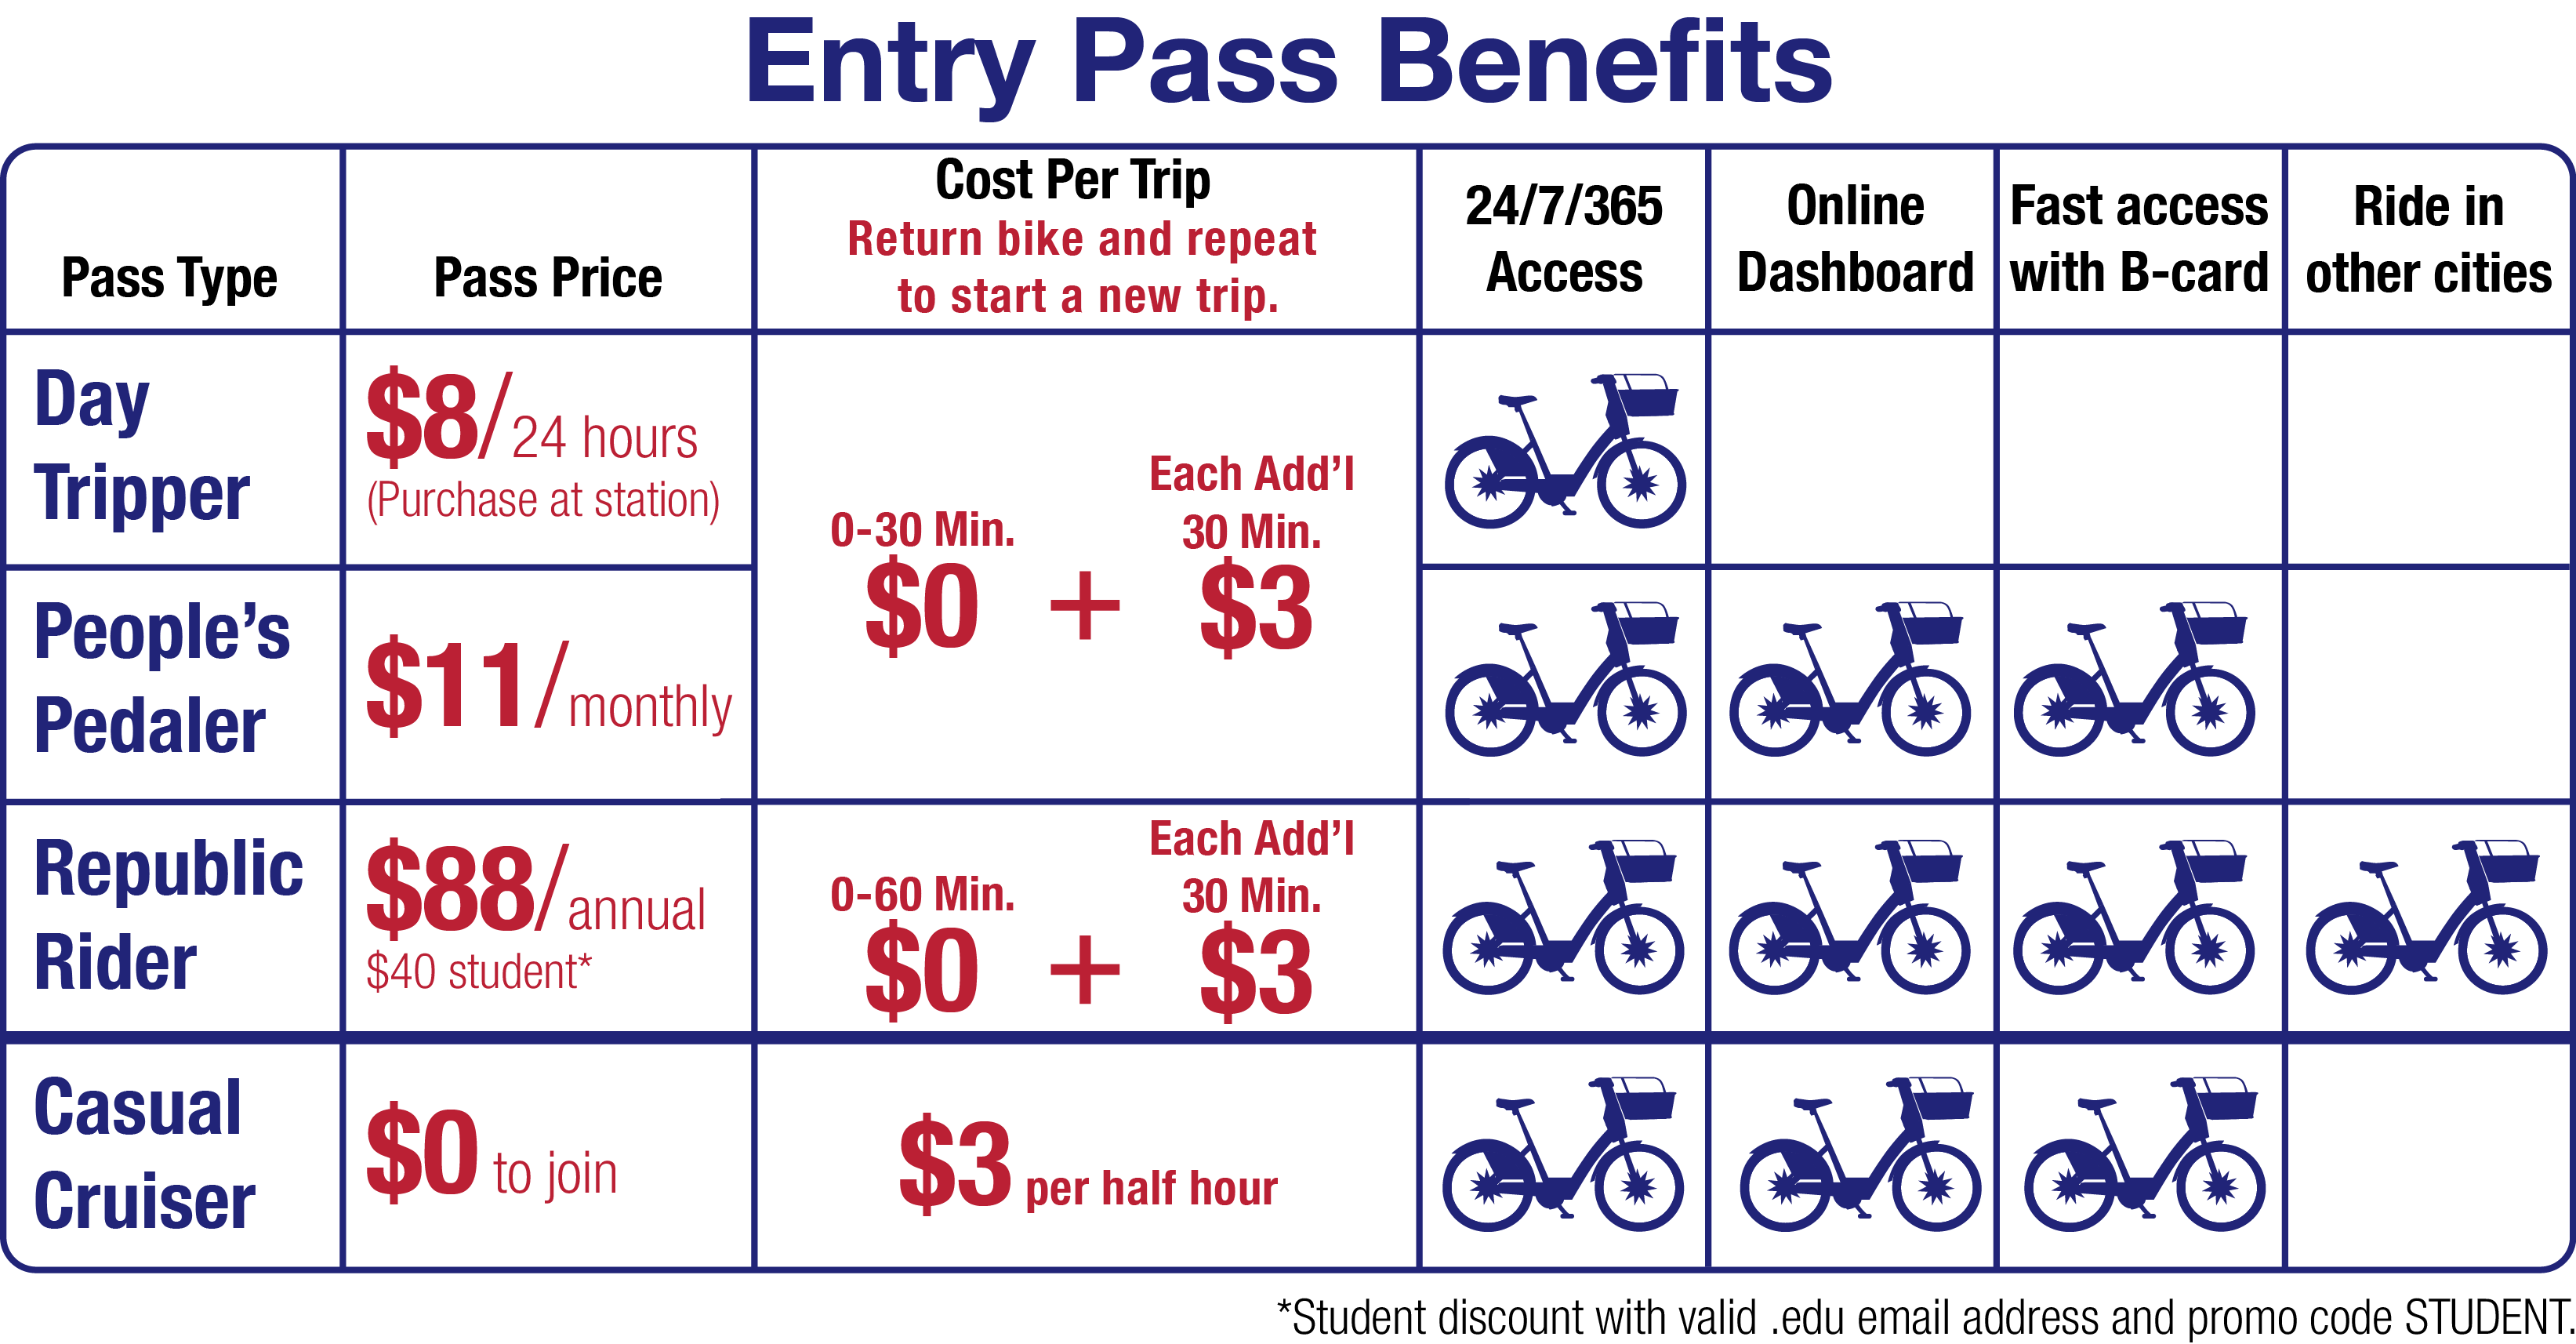 Pass Benefits_4_2016